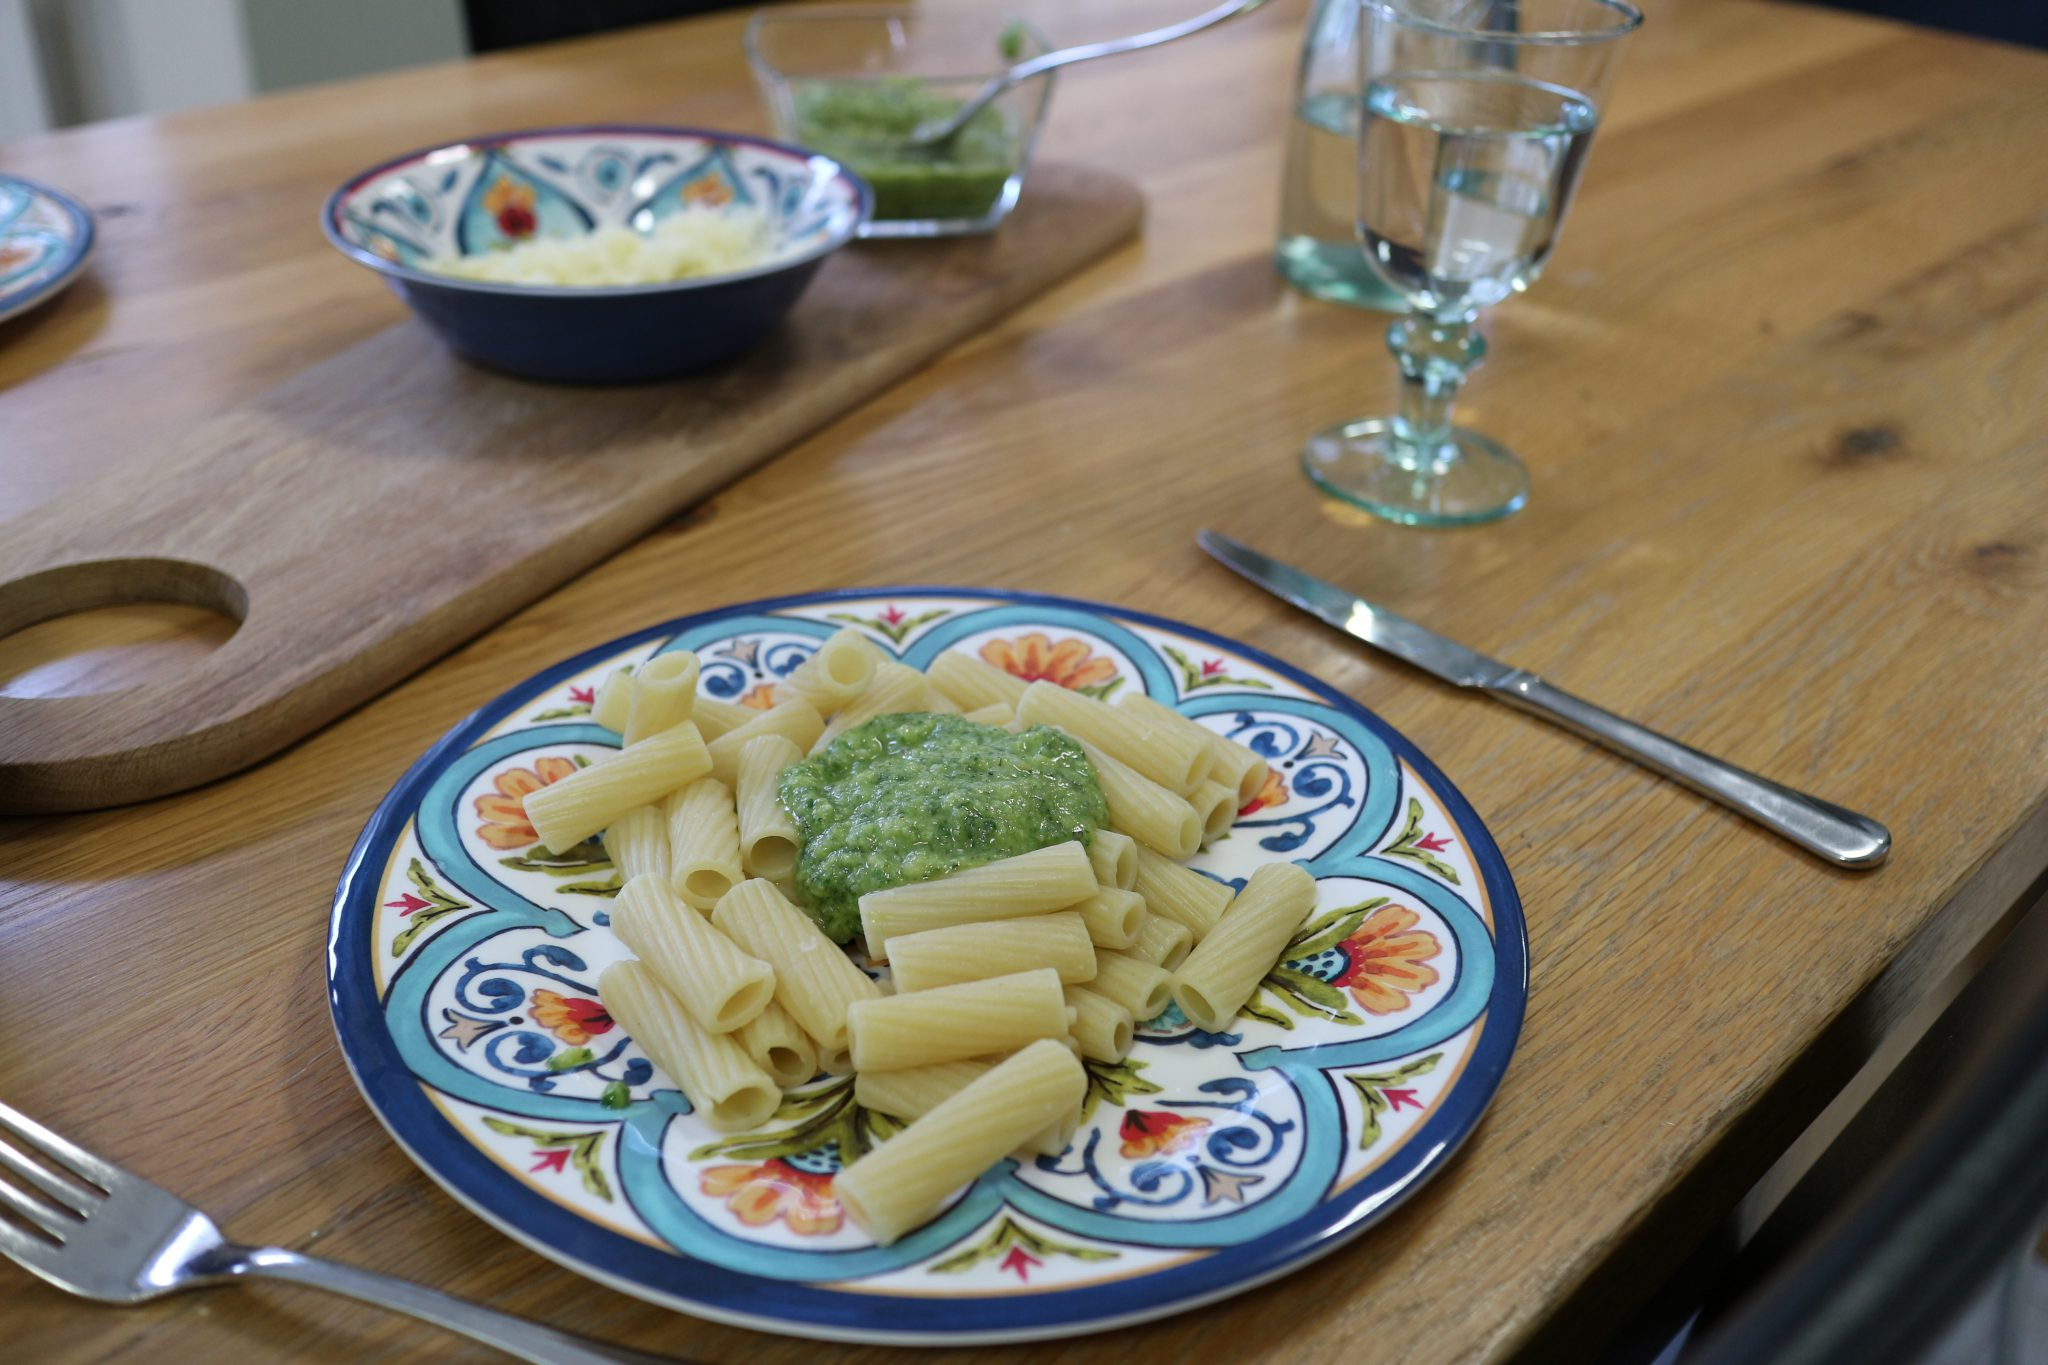 A plate full of penne pasta and fresh basil pesto.